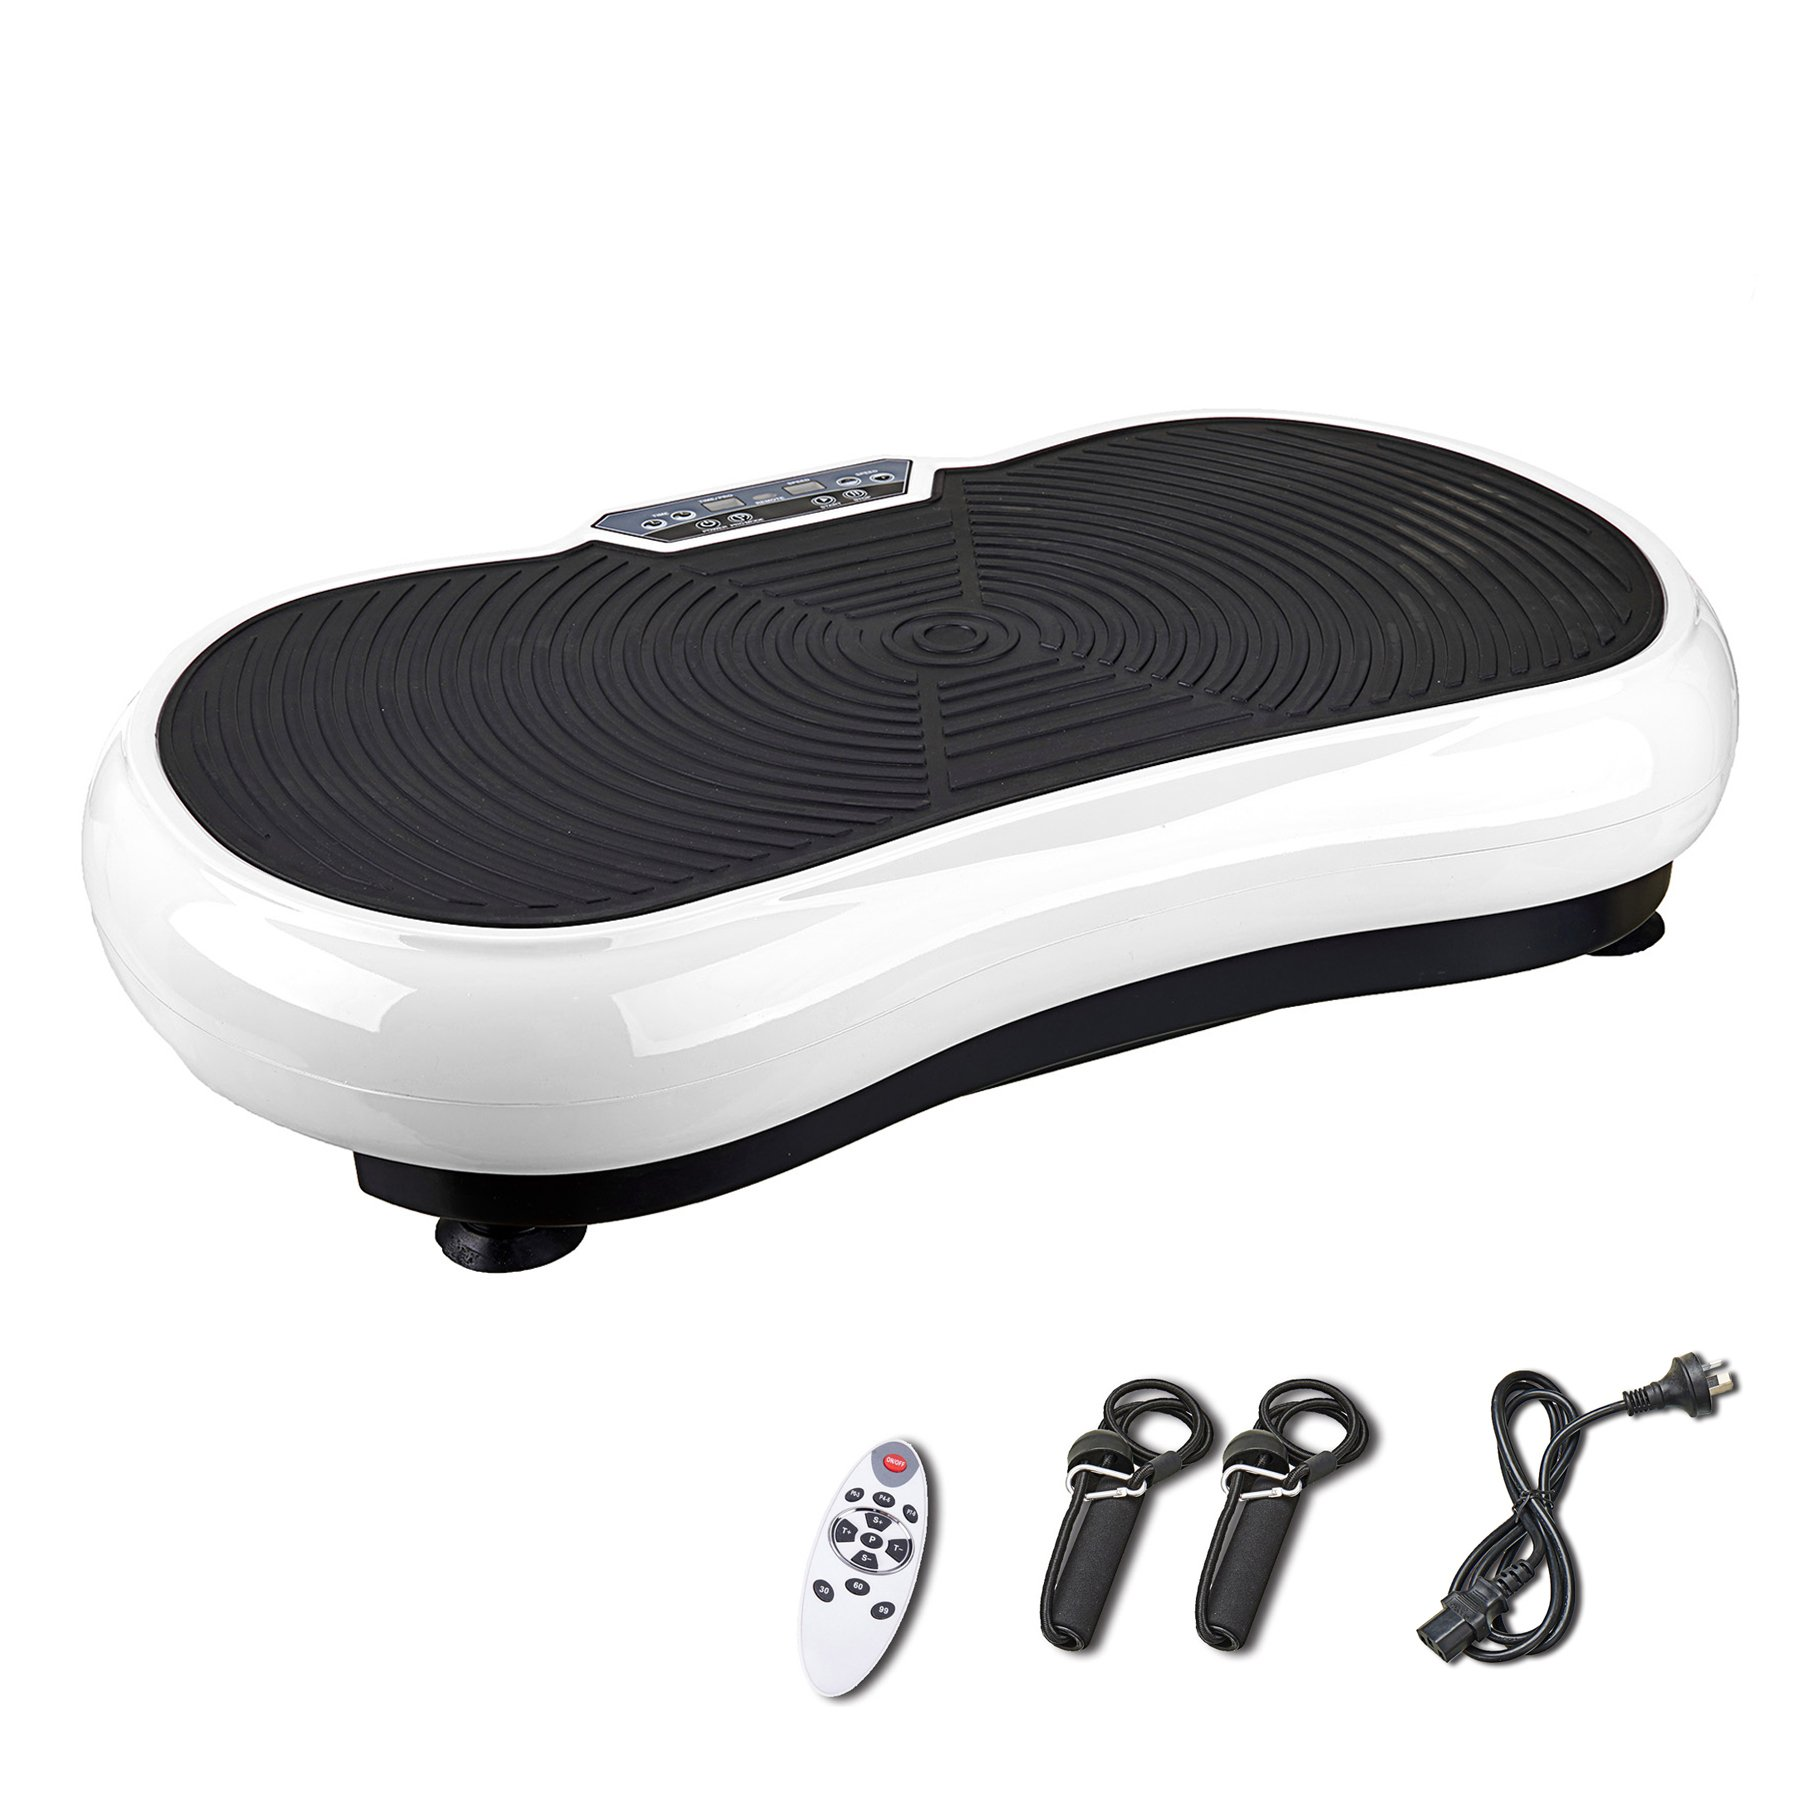 Pinty Fitness Vibration Platform - Whole Body Vibration Machine Crazy Fit Vibration Plate with Remote Control & Resistance Bands (White) by Pinty (Image #1)